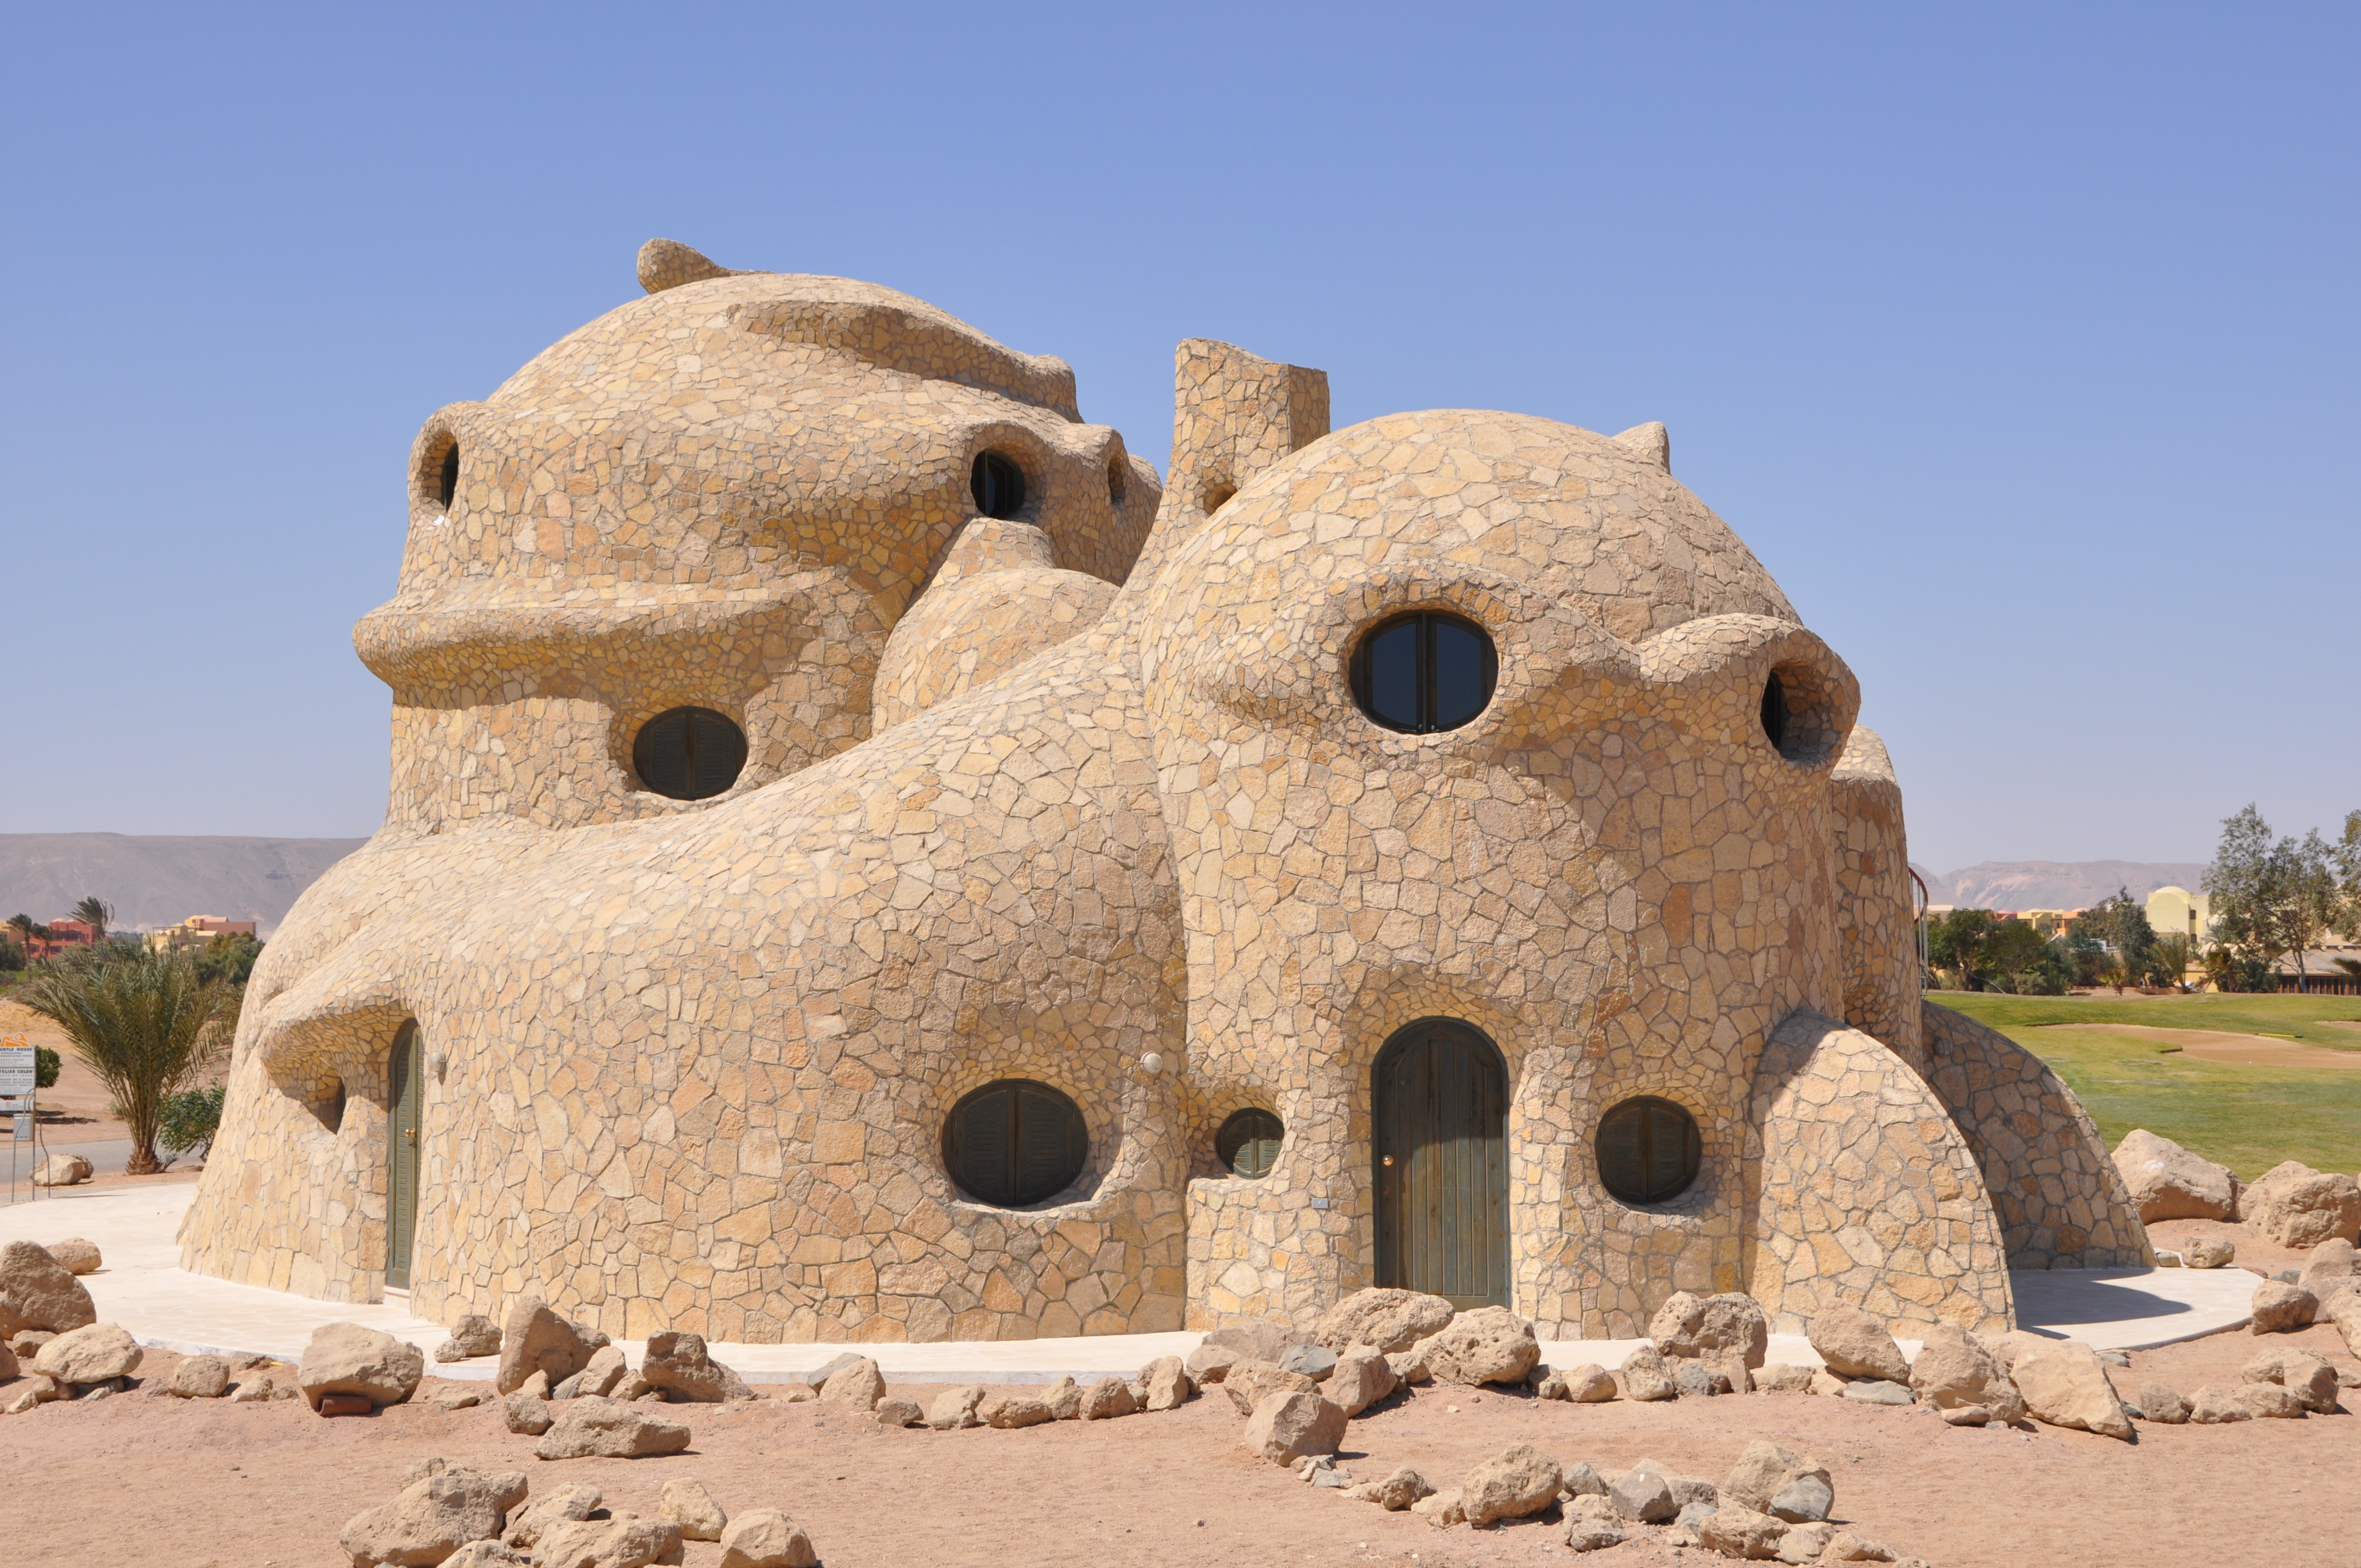 The Turtle House.